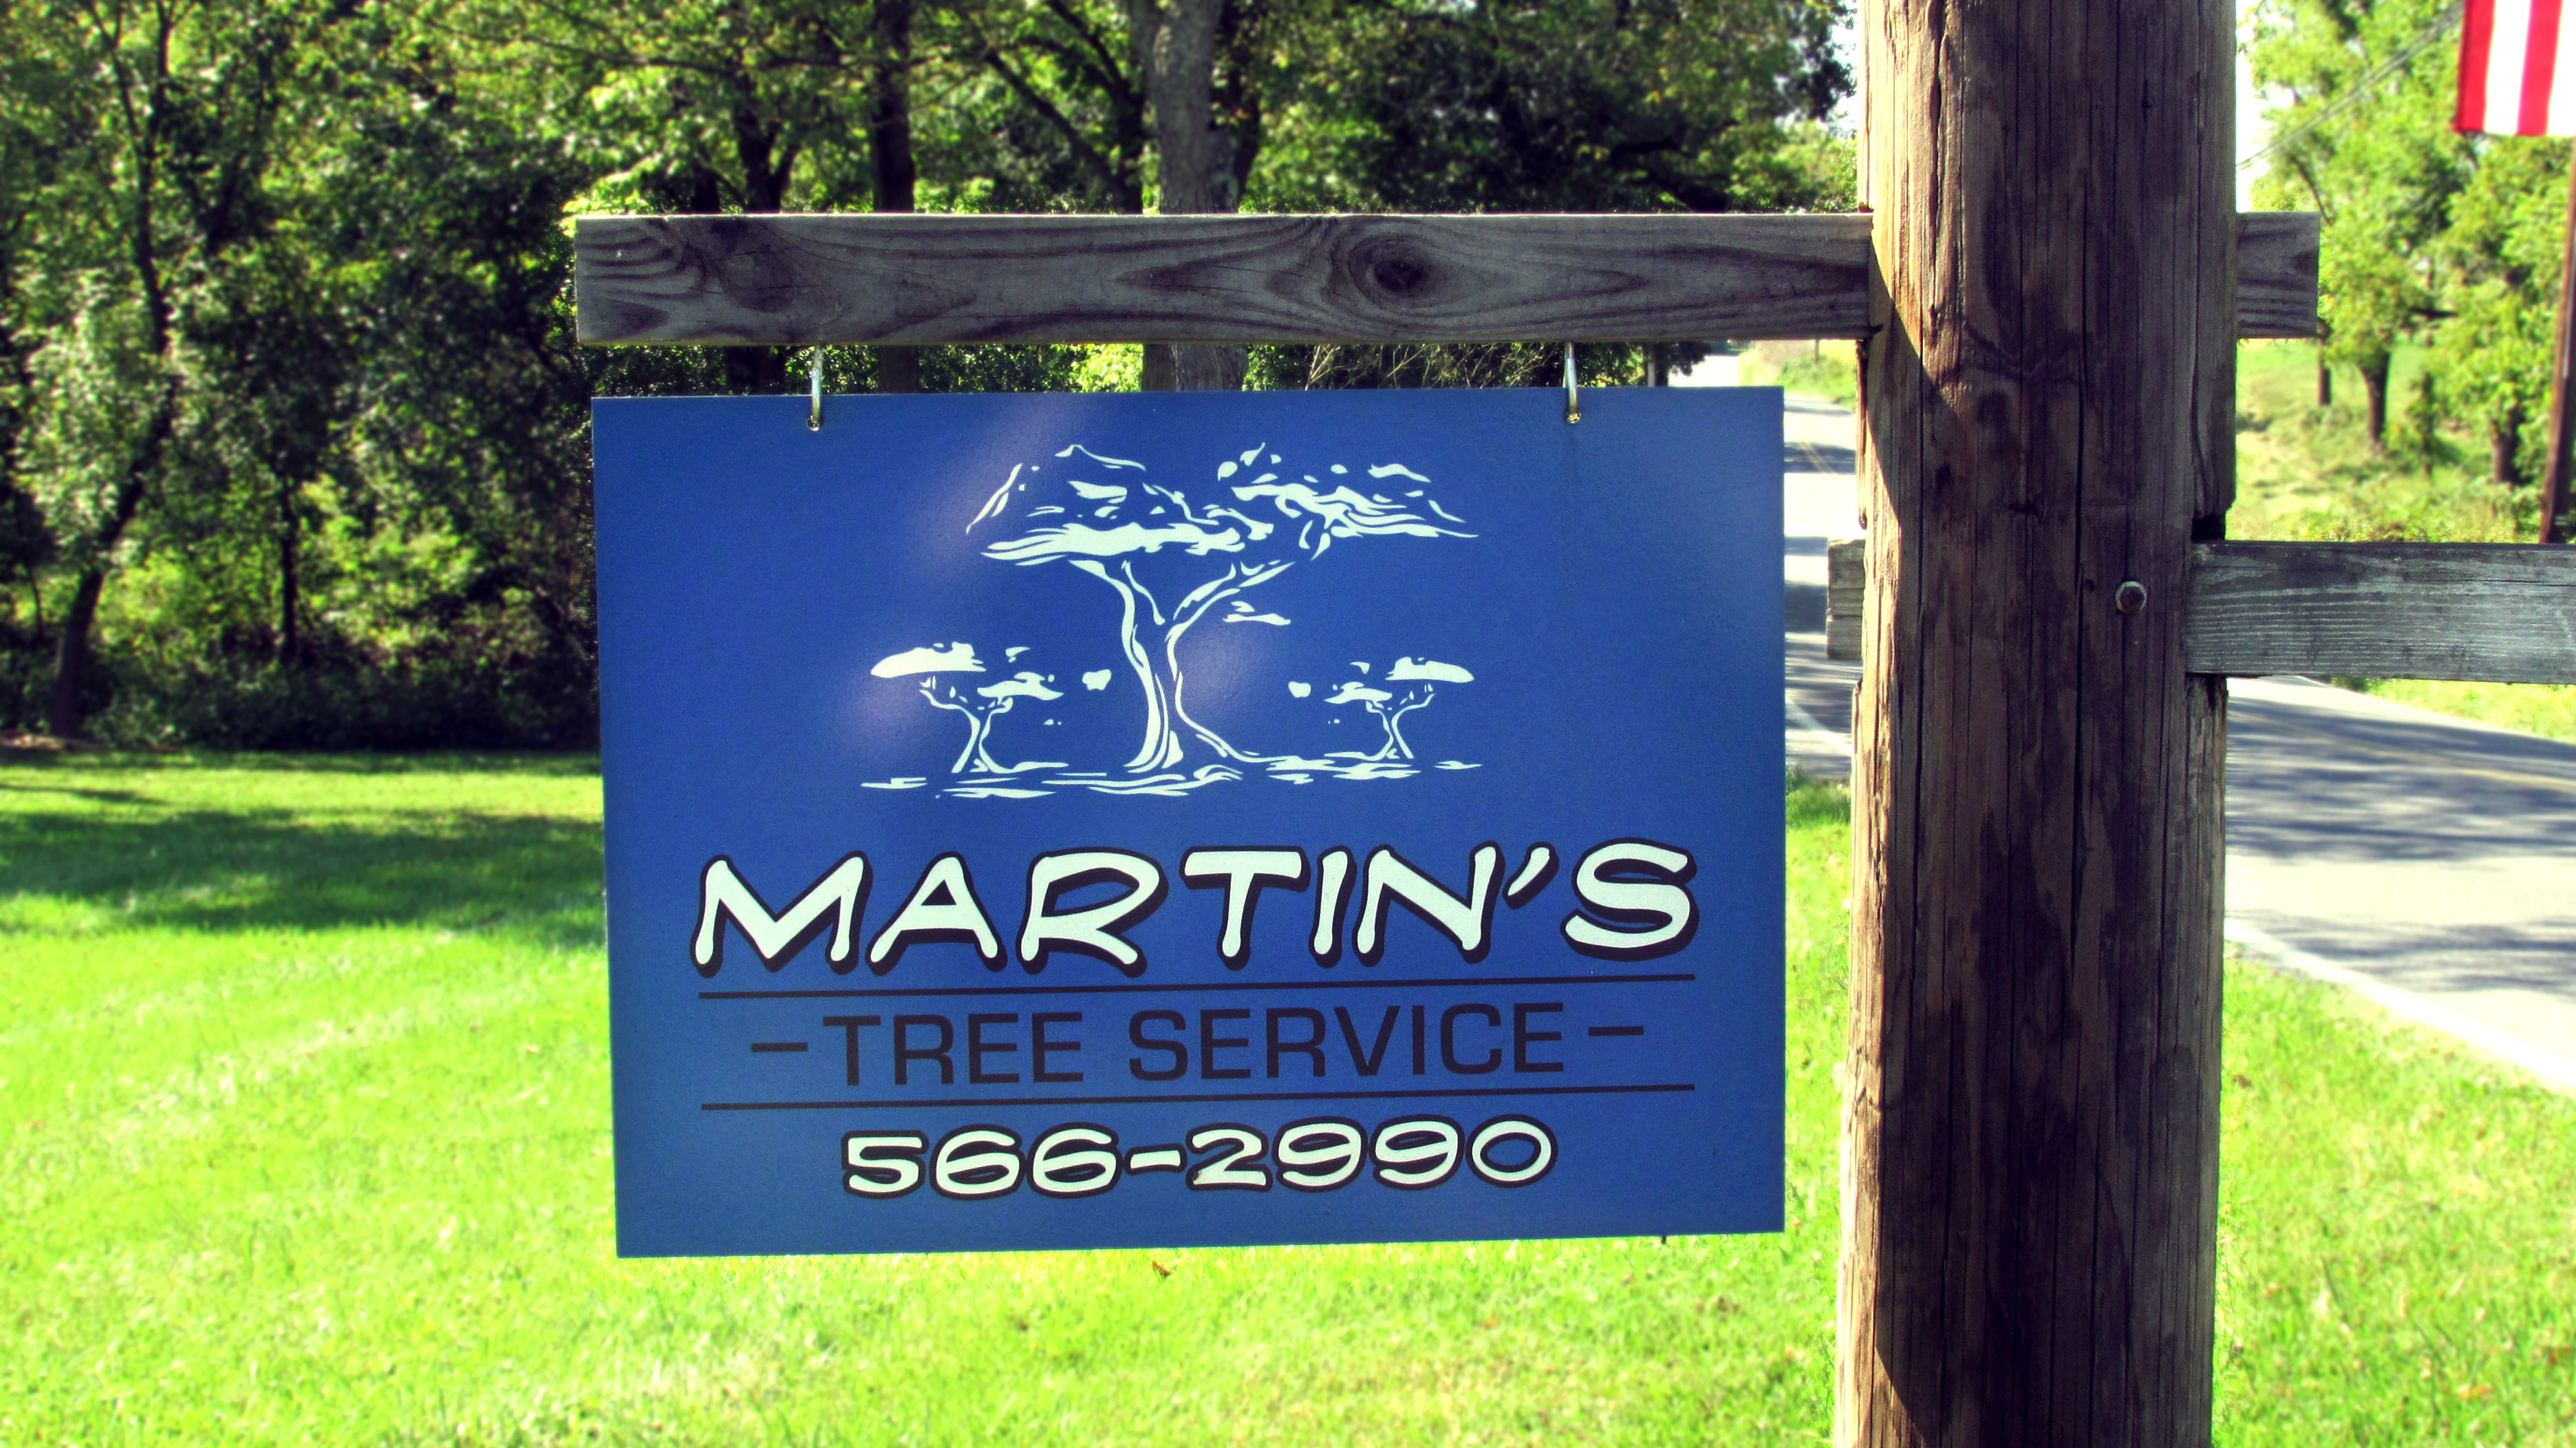 Martin's Tree Service Post Sign